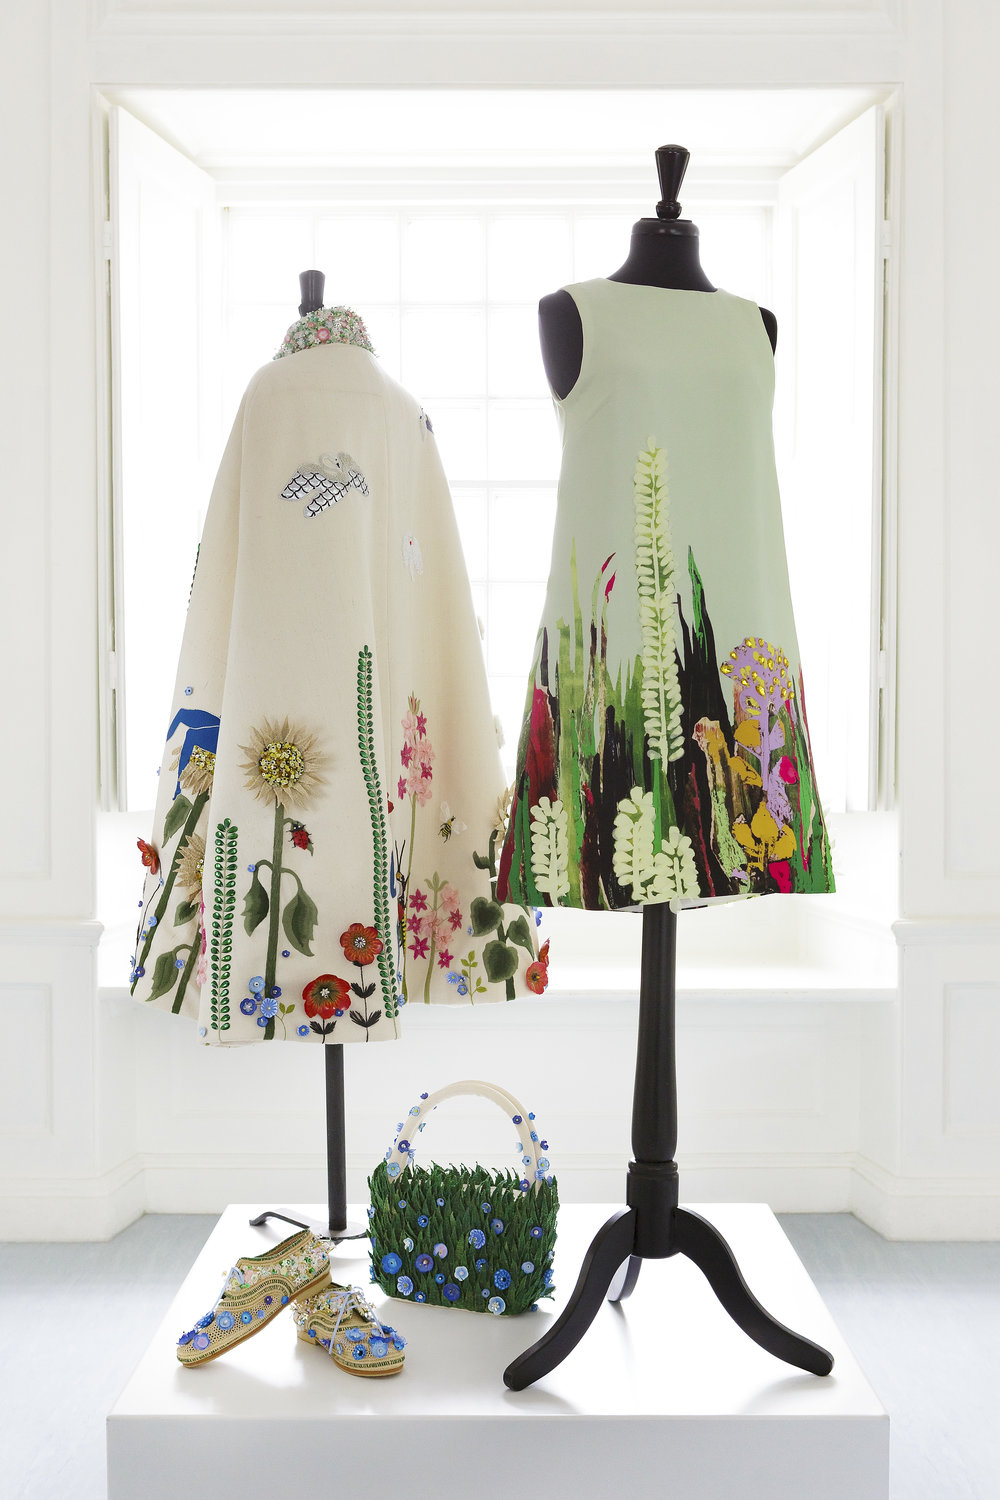 - Ridiculously talented and magical work by @liviaembroidery...Livia's work is definitely our @fashionroundtable#onetowatch. Her work, her process, her research and the links between all of these are dripping in eloquent and poetic creativity.- Tamara Cincik